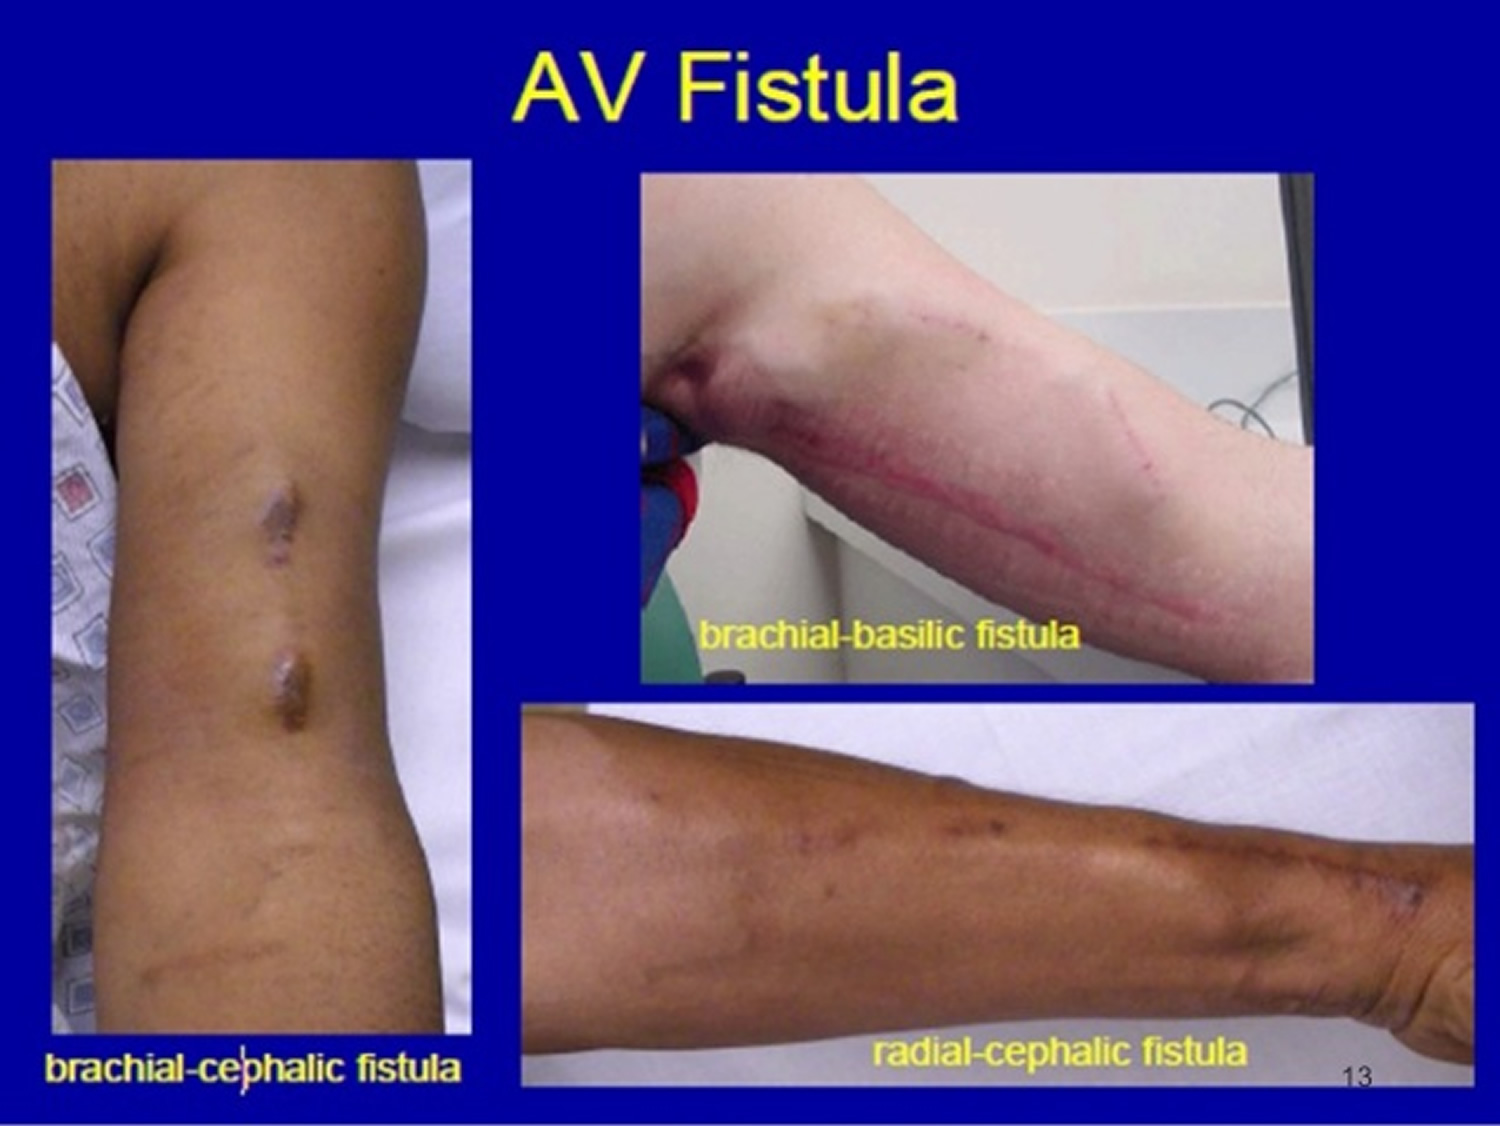 How to Diagnose a Fistula photo